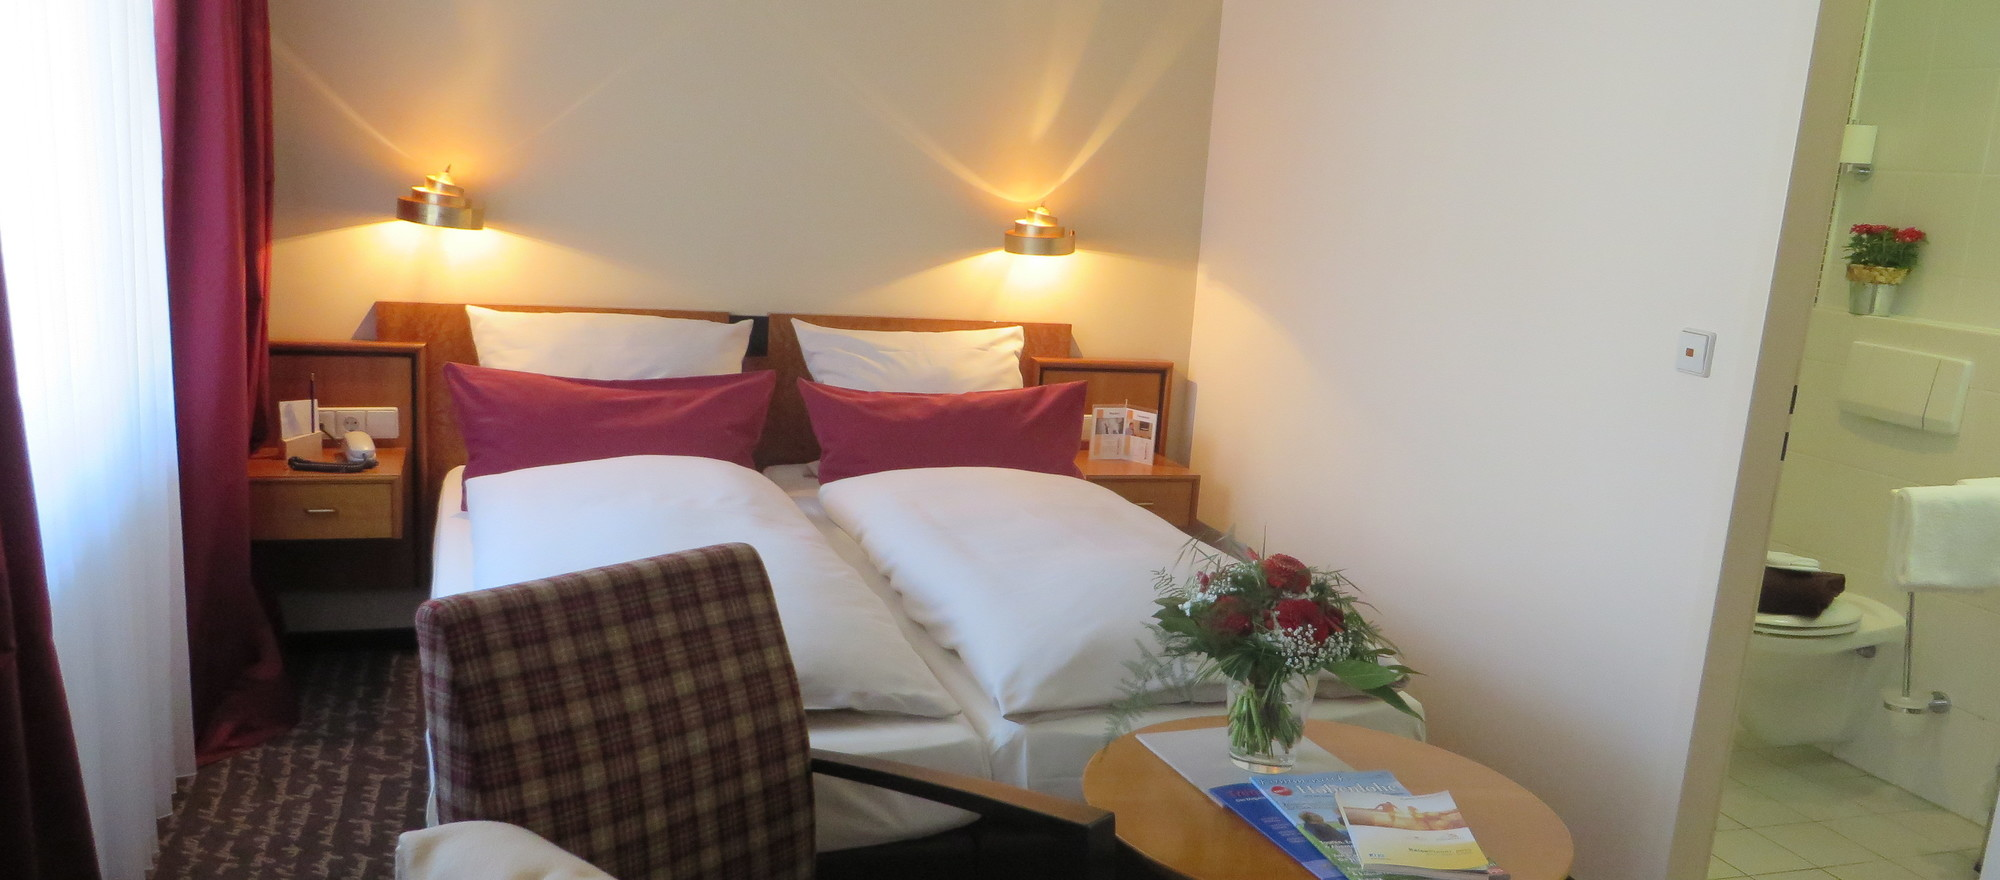 Double room at the 4-star hotel Ringhotel Bundschu in Bad Mergentheim